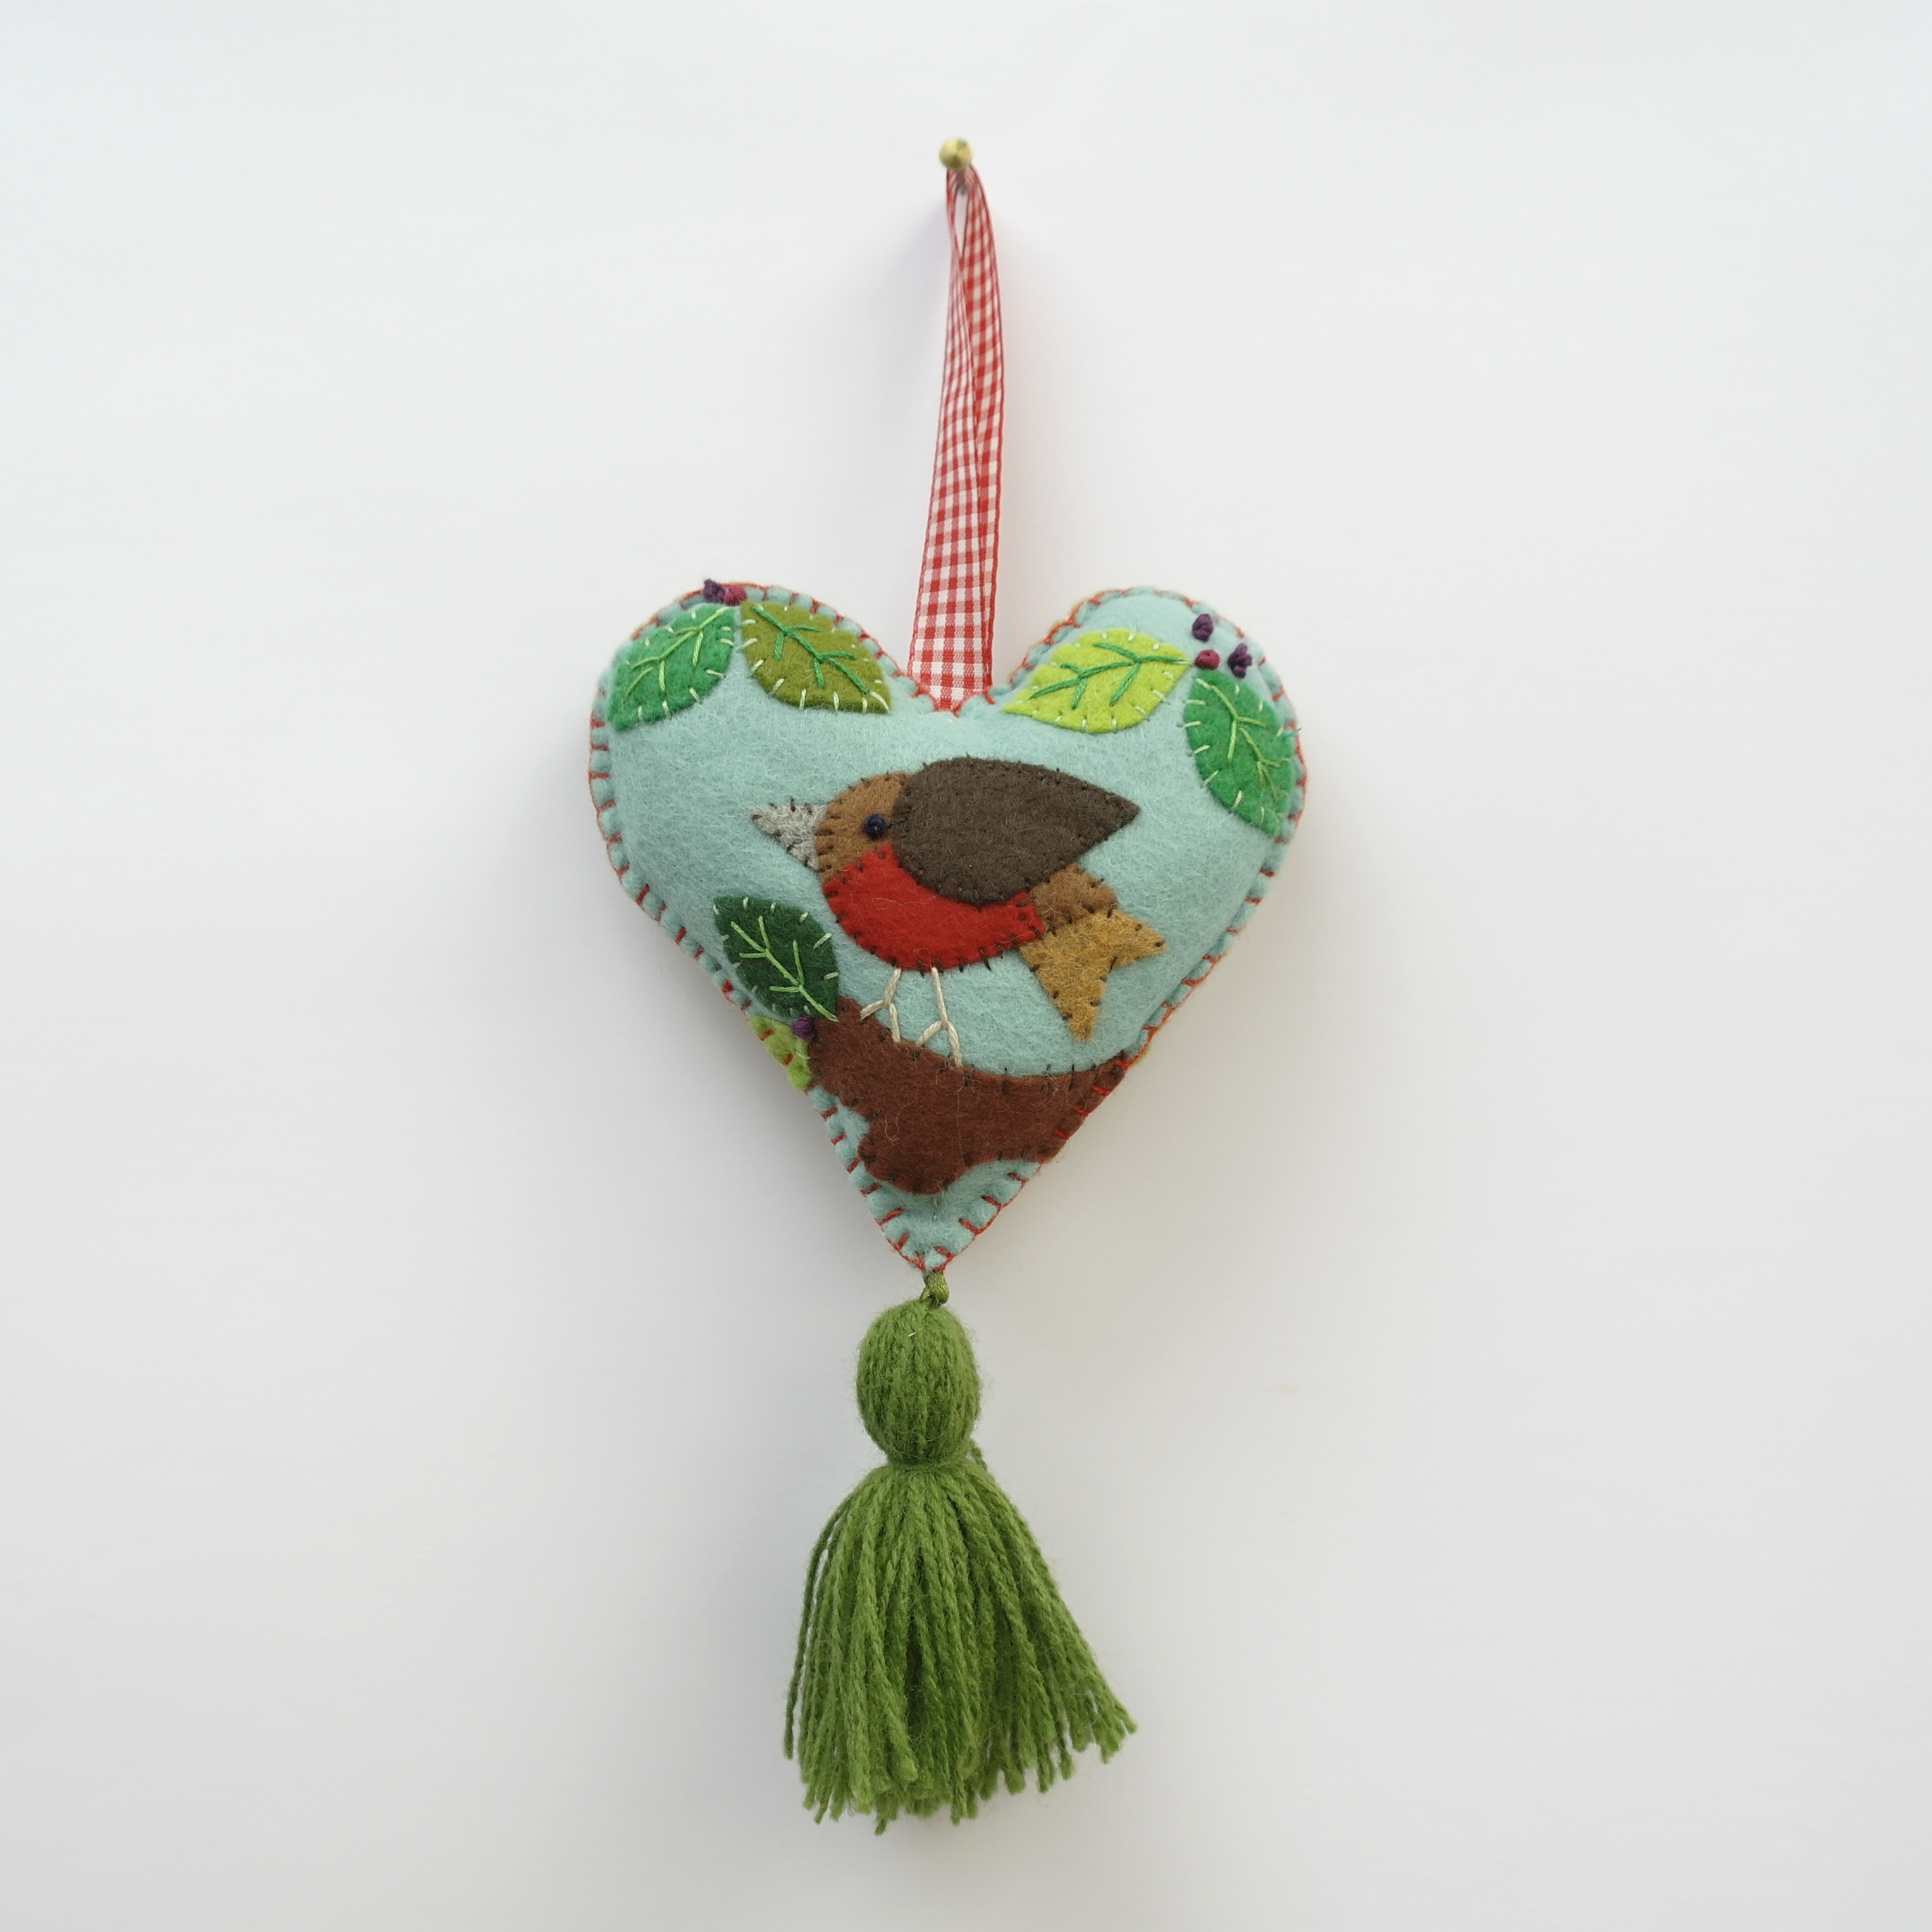 Hand-stitched Robin and Tassel Christmas Decoration